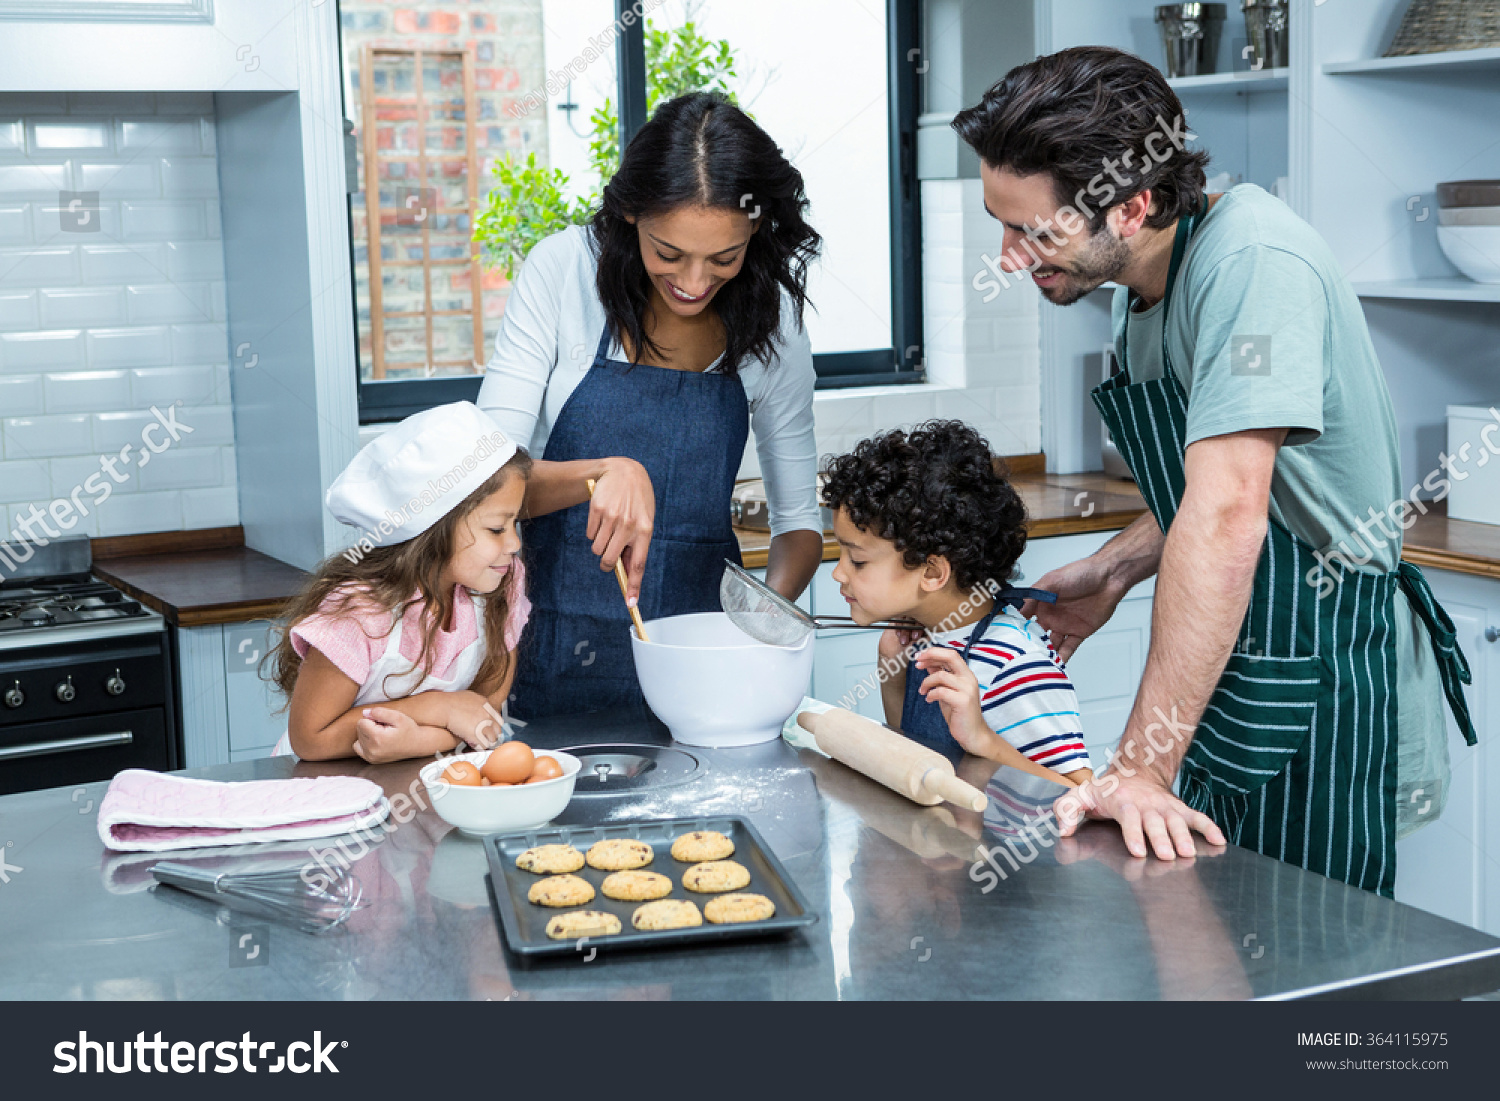 Family cooking kitchen - Happy Family Cooking Biscuits Together In Kitchen At Home